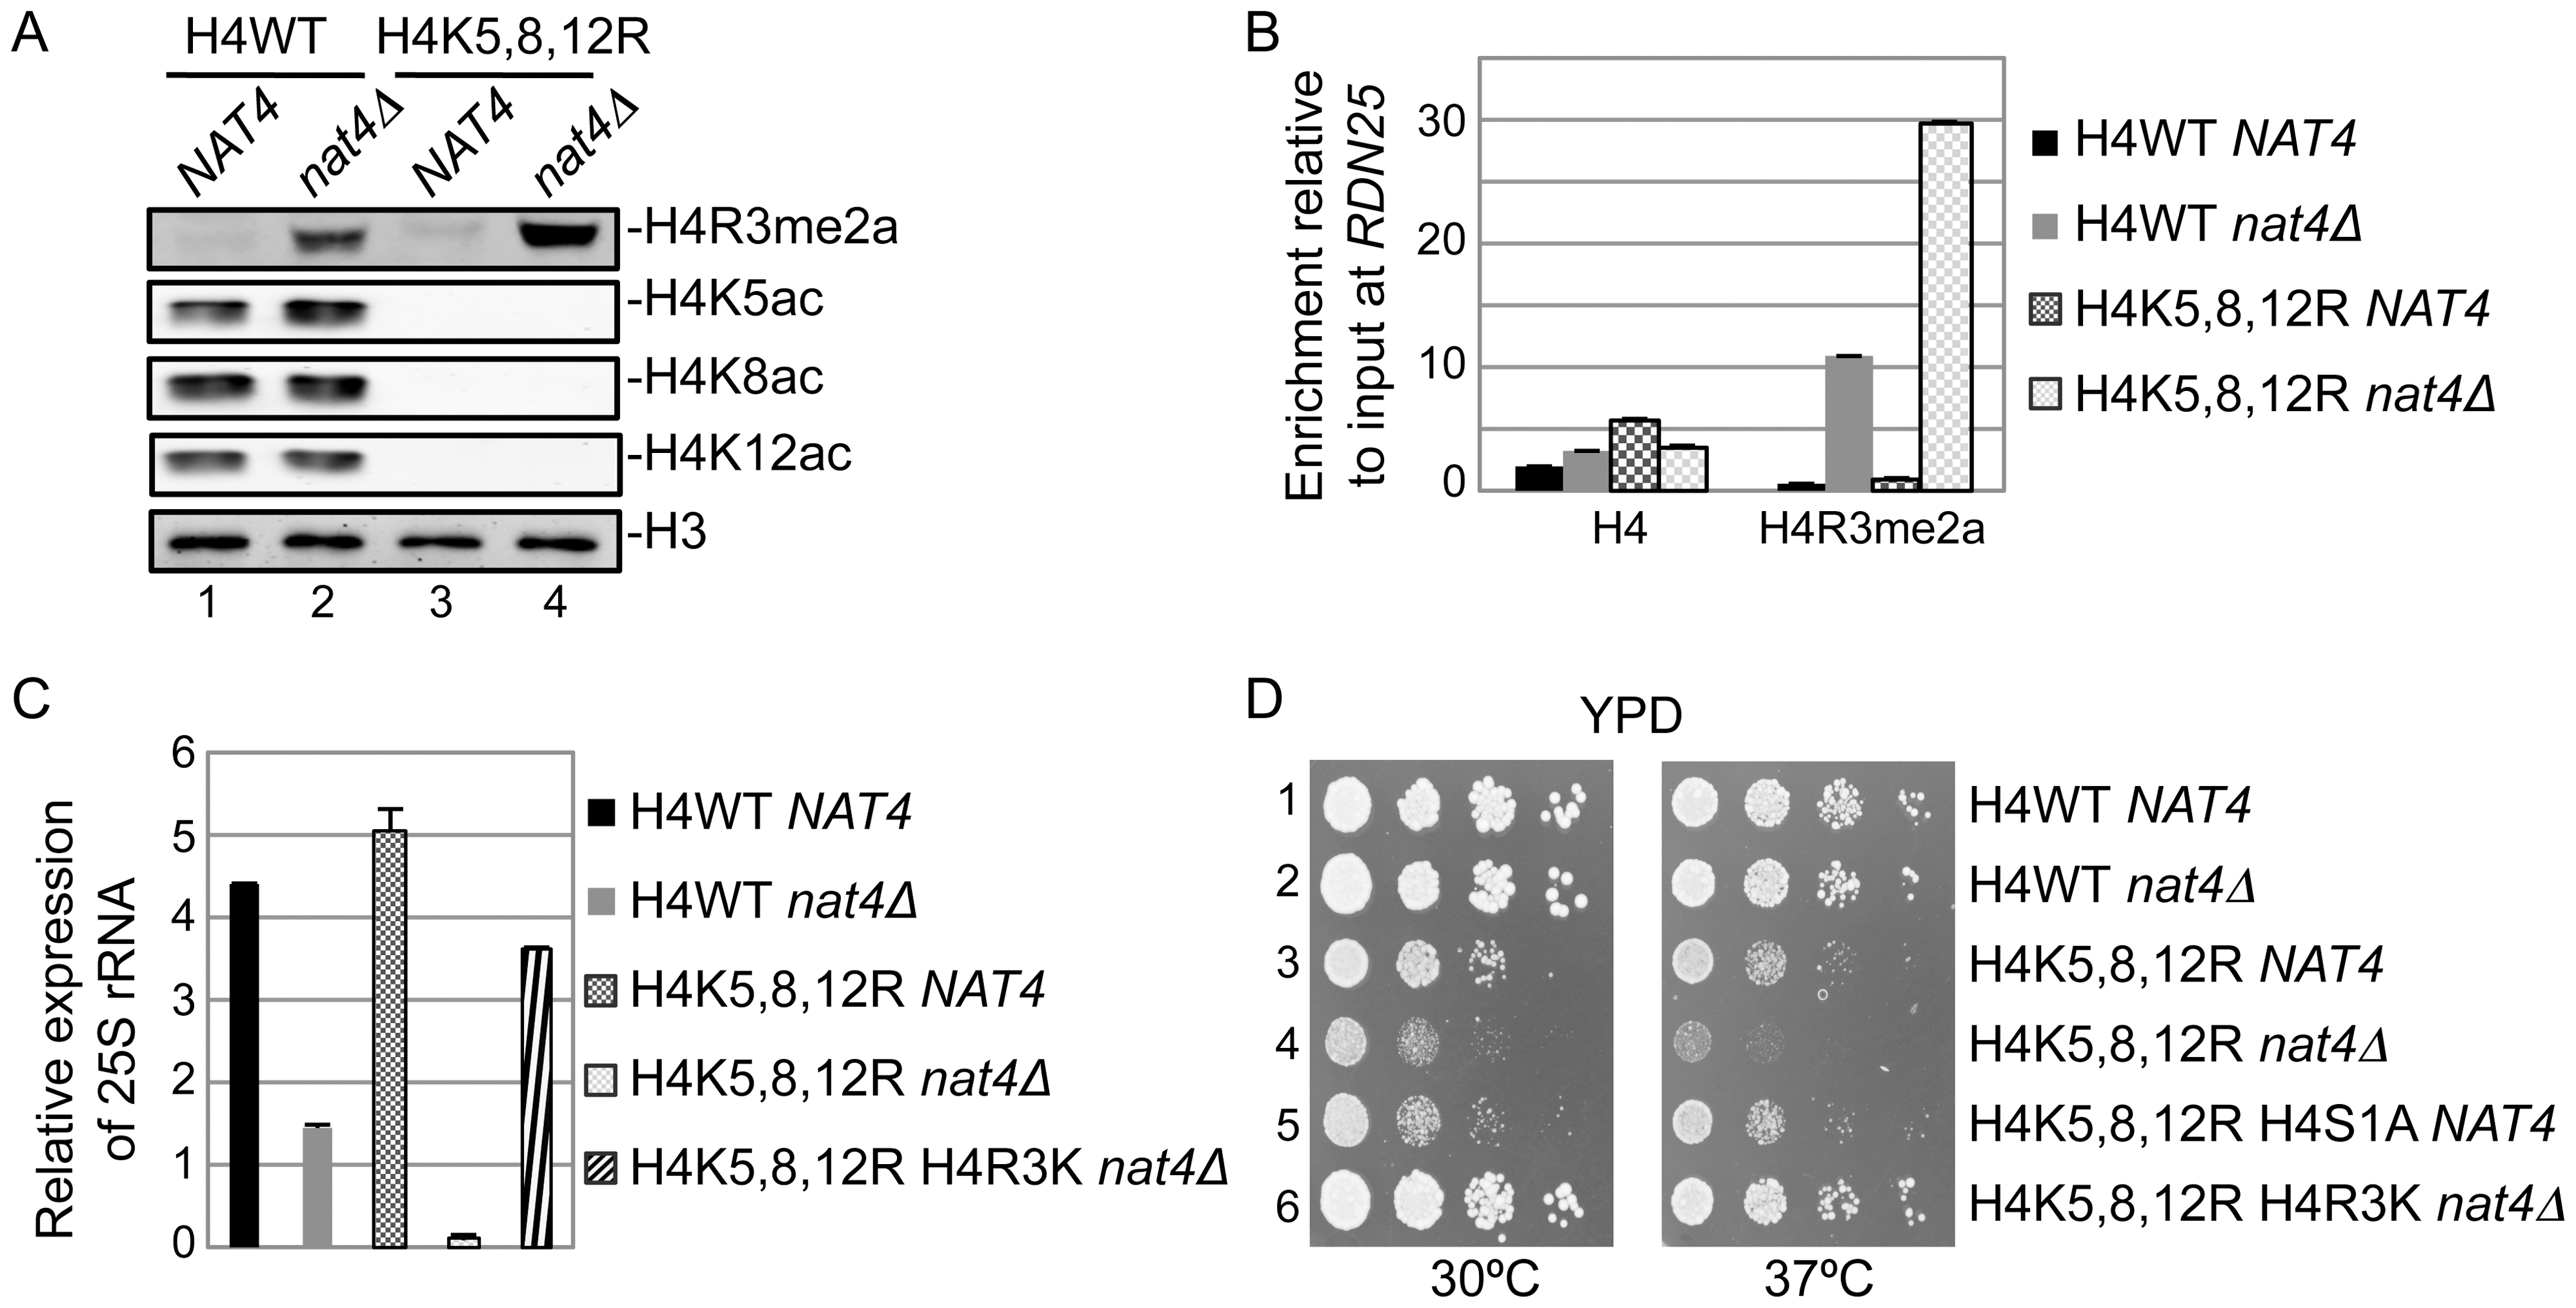 N-acH4 acts synergistically with H4K5, 8, 12 acetylation to control rDNA silencing, H4R3me2a and cell growth.